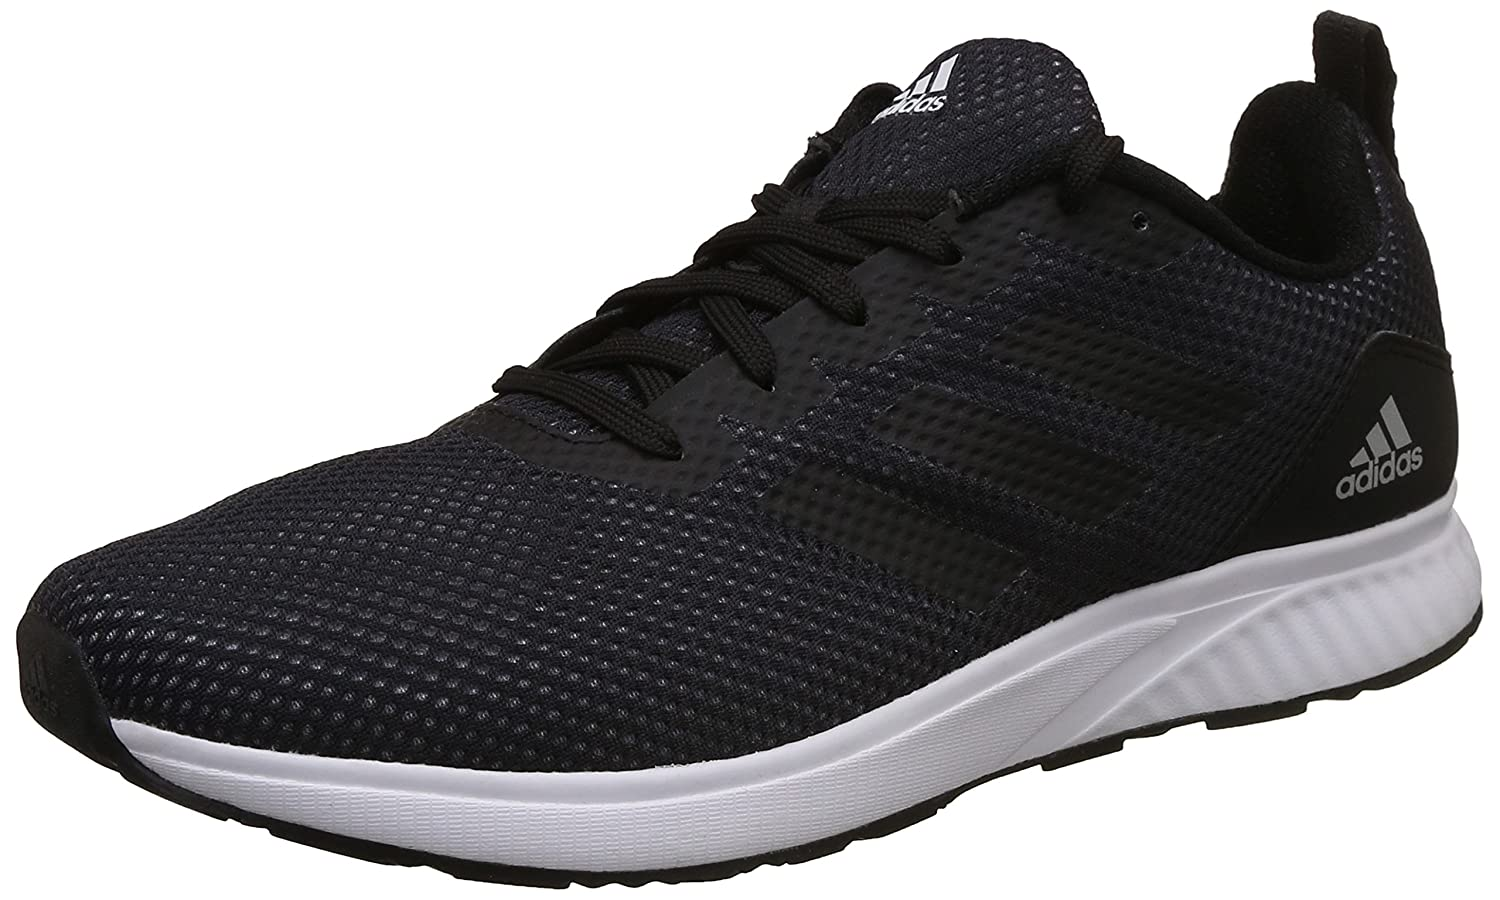 385b54b7614 Adidas Men s Furio Lite M Black Running Shoes-7 UK India (40 2 3 EU)  (CJ0108)  Buy Online at Low Prices in India - Amazon.in